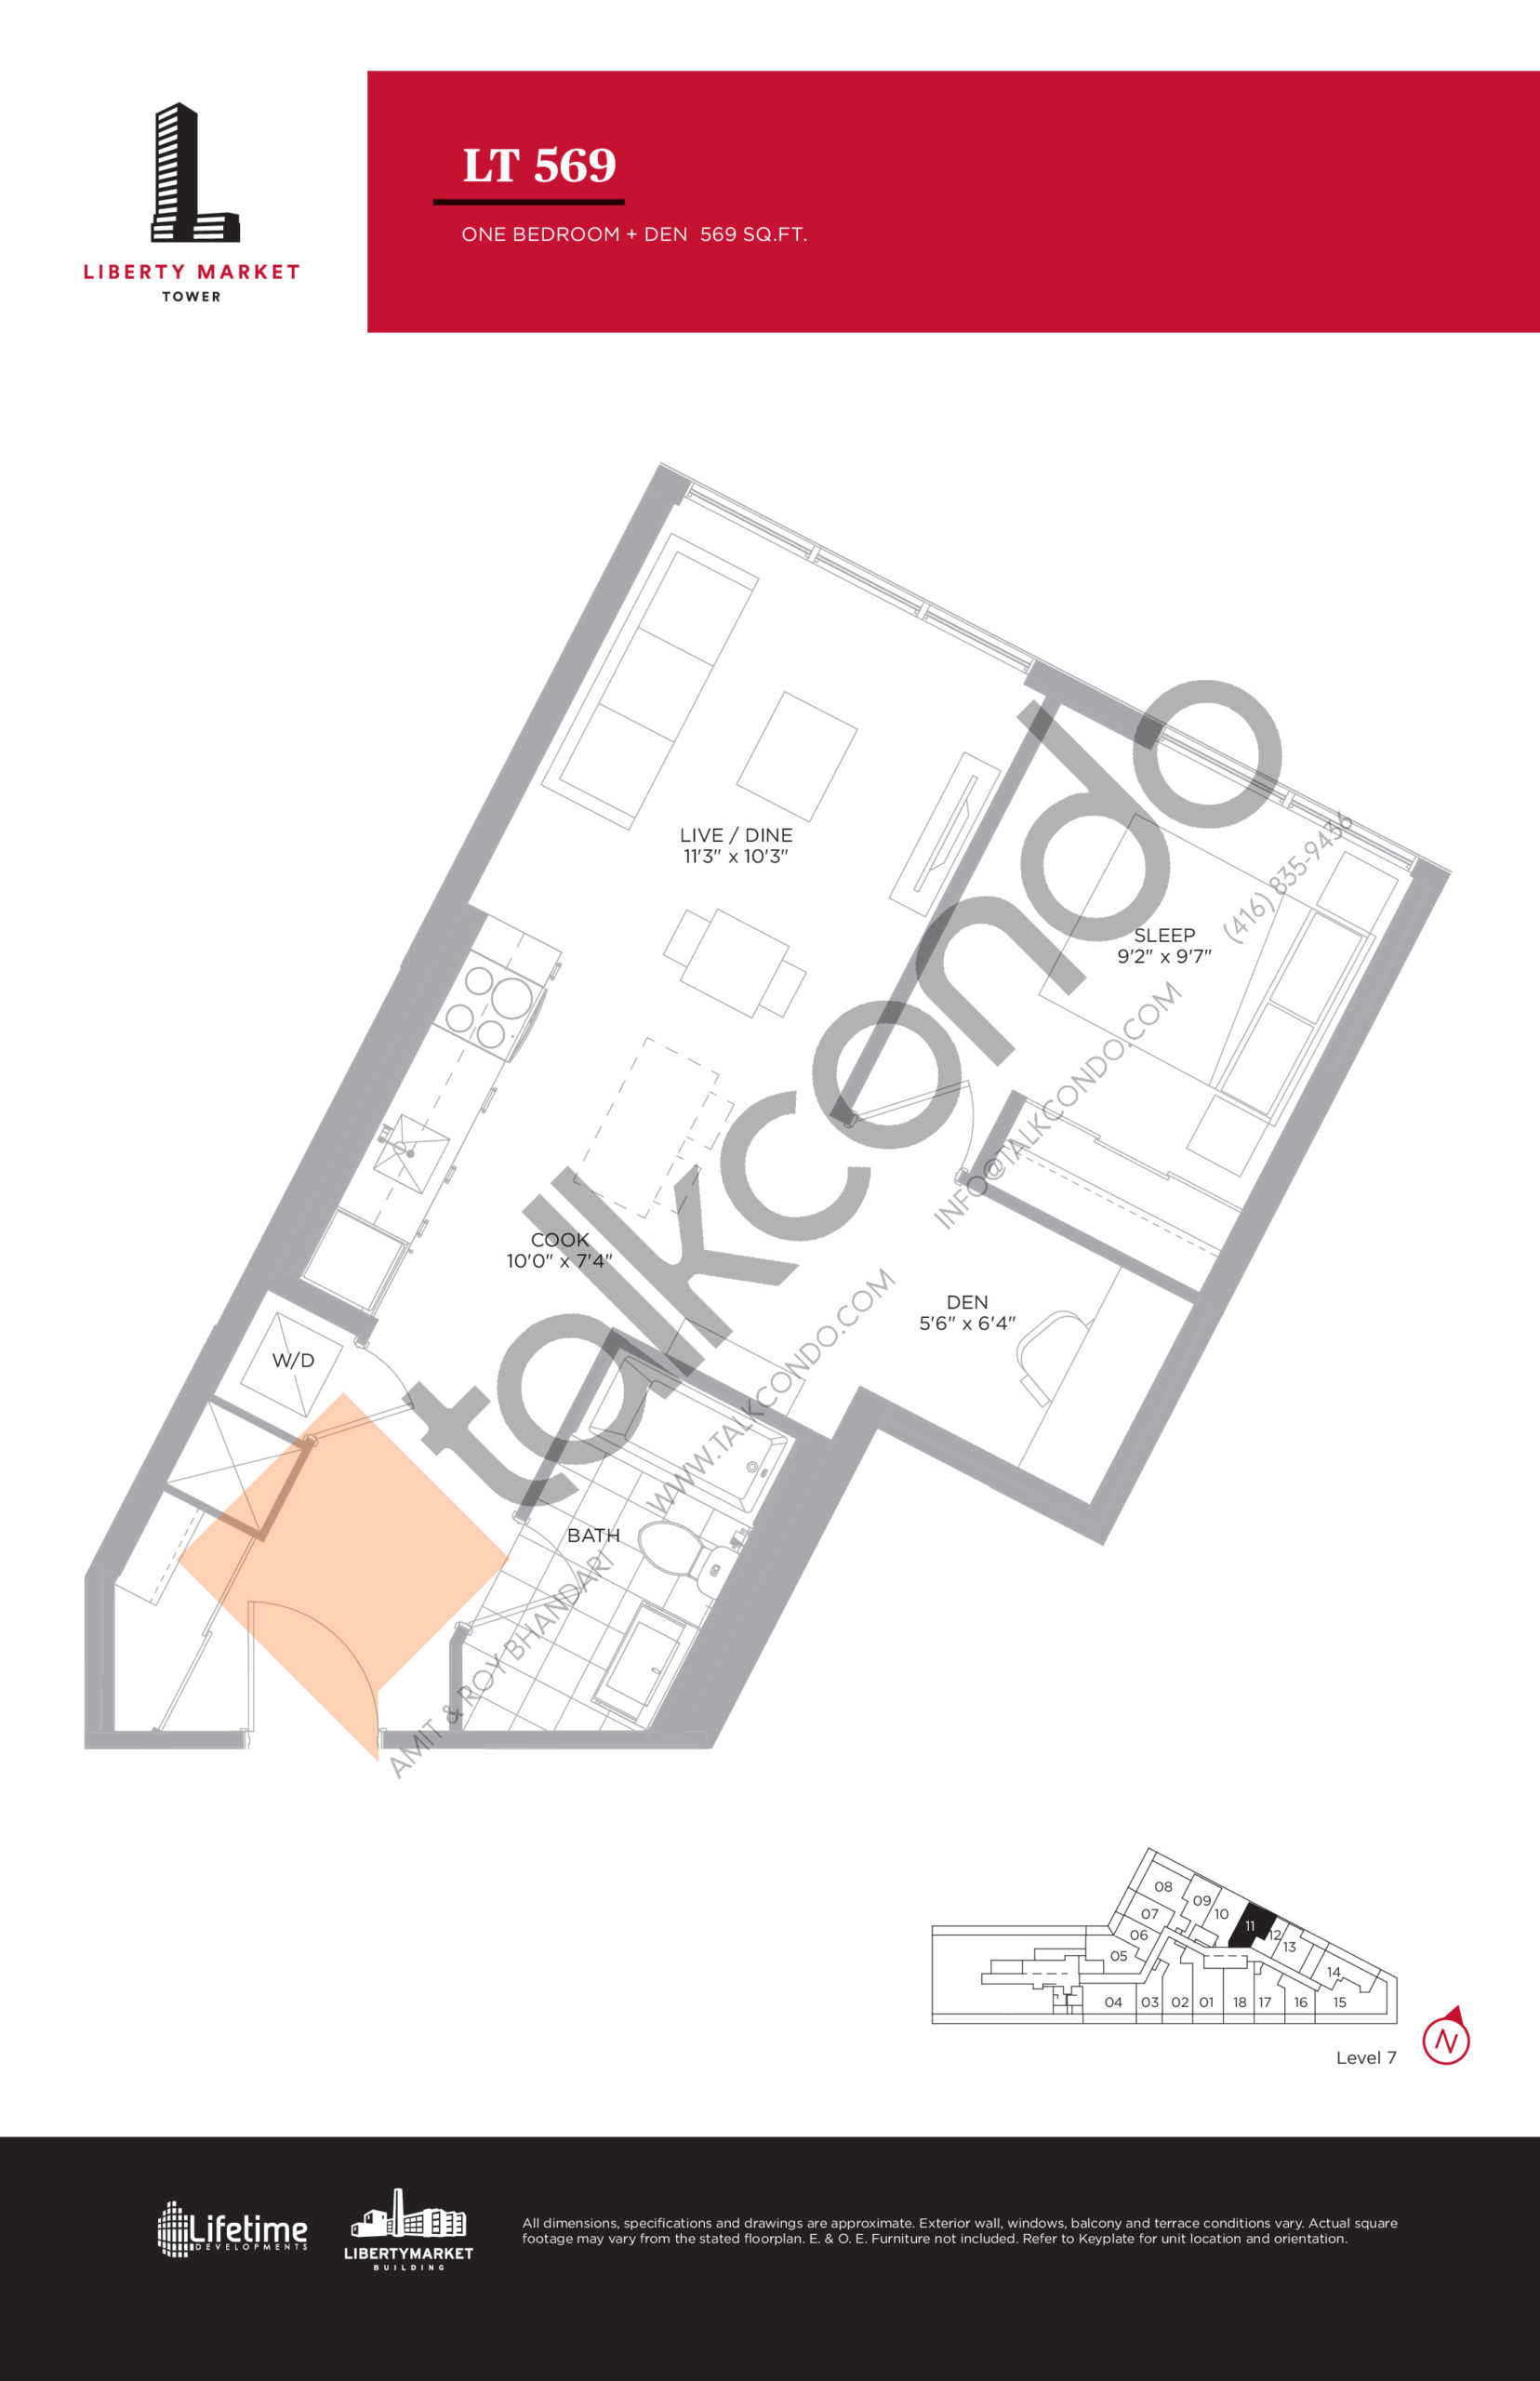 LT 569 - Tower Collection Floor Plan at Liberty Market Tower Condos - 569 sq.ft